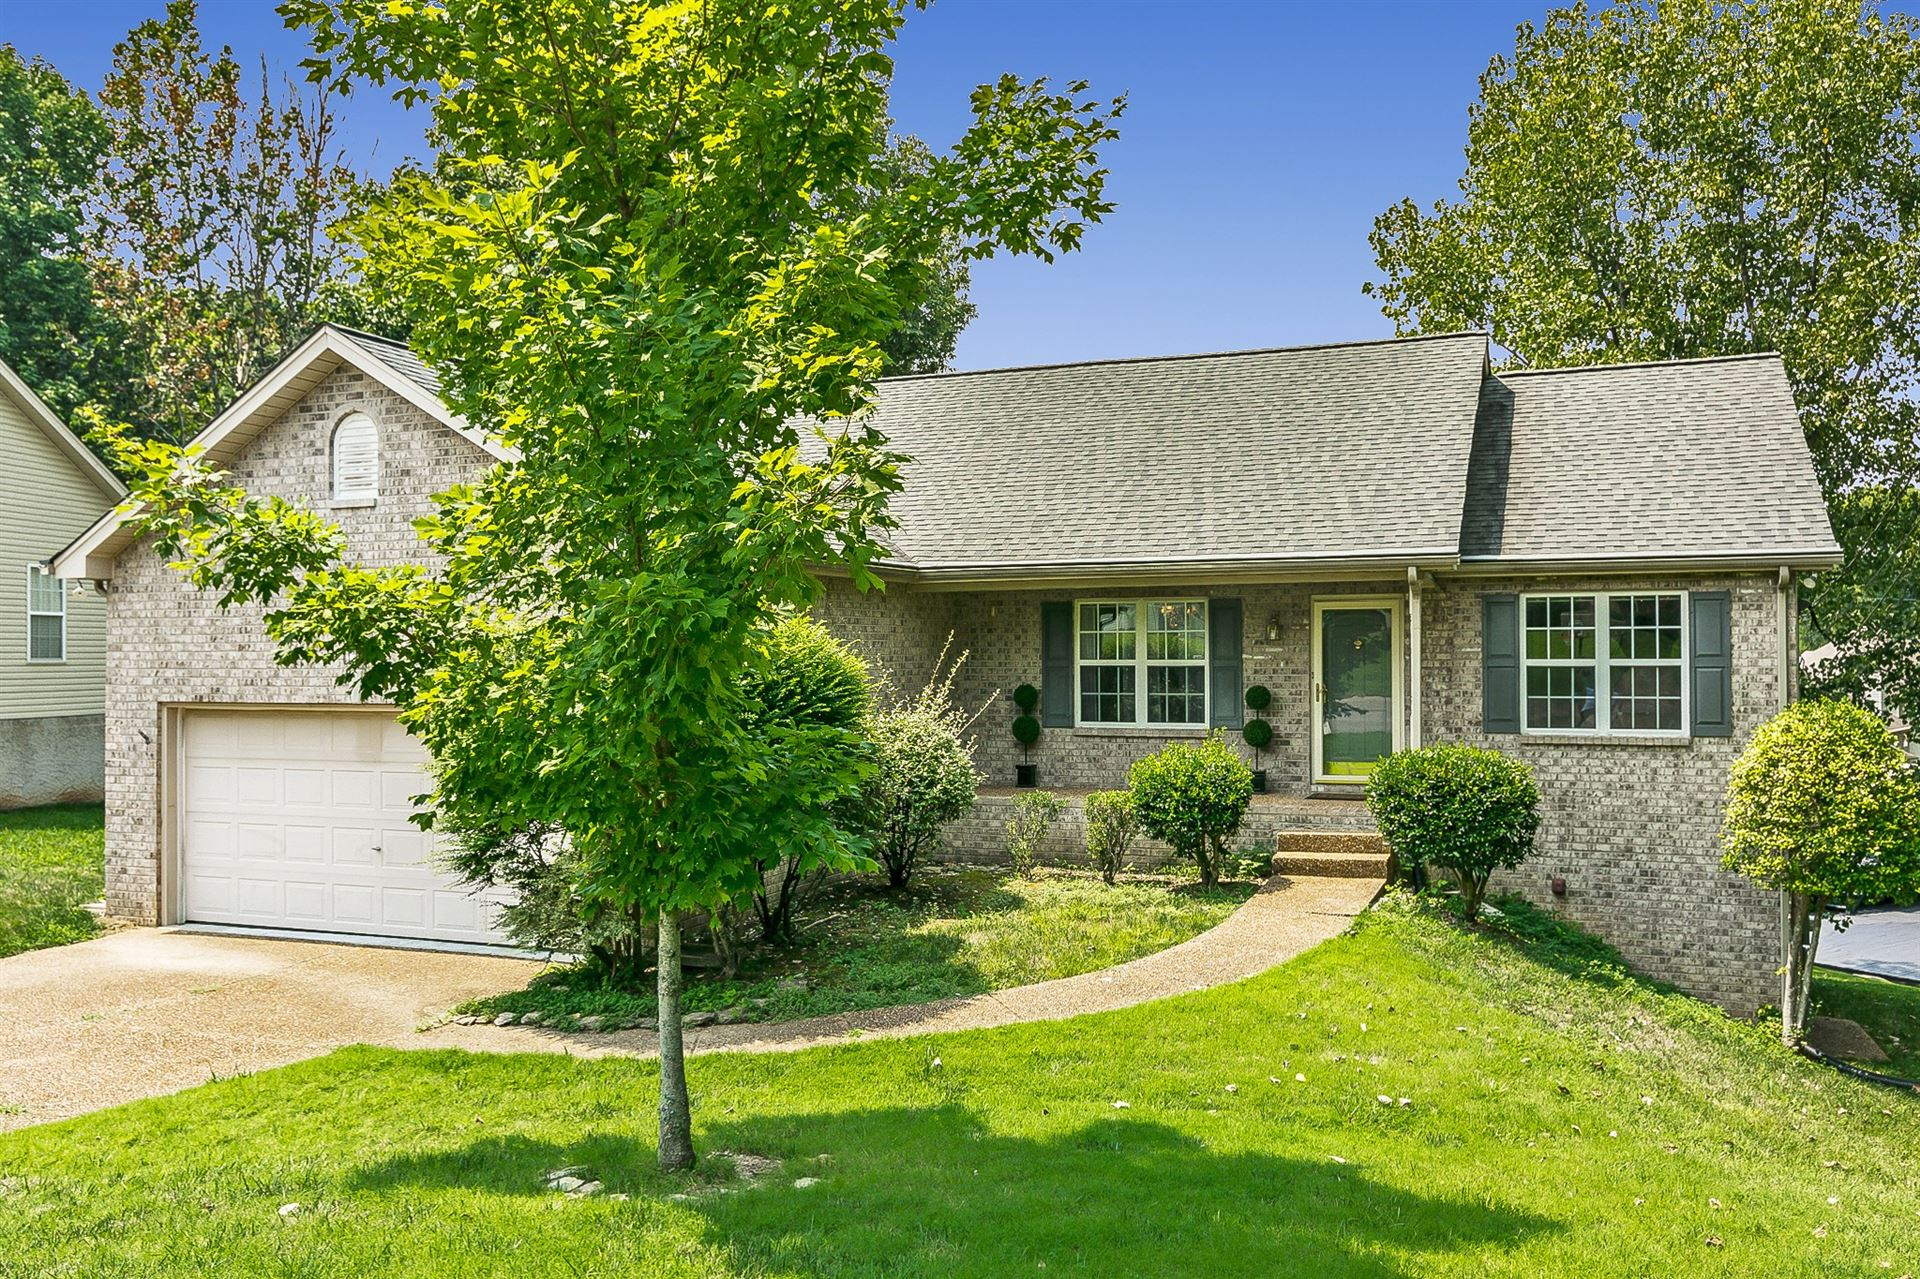 3605 Sussex Ct, Old Hickory, TN 37138 - MLS#: 2277212